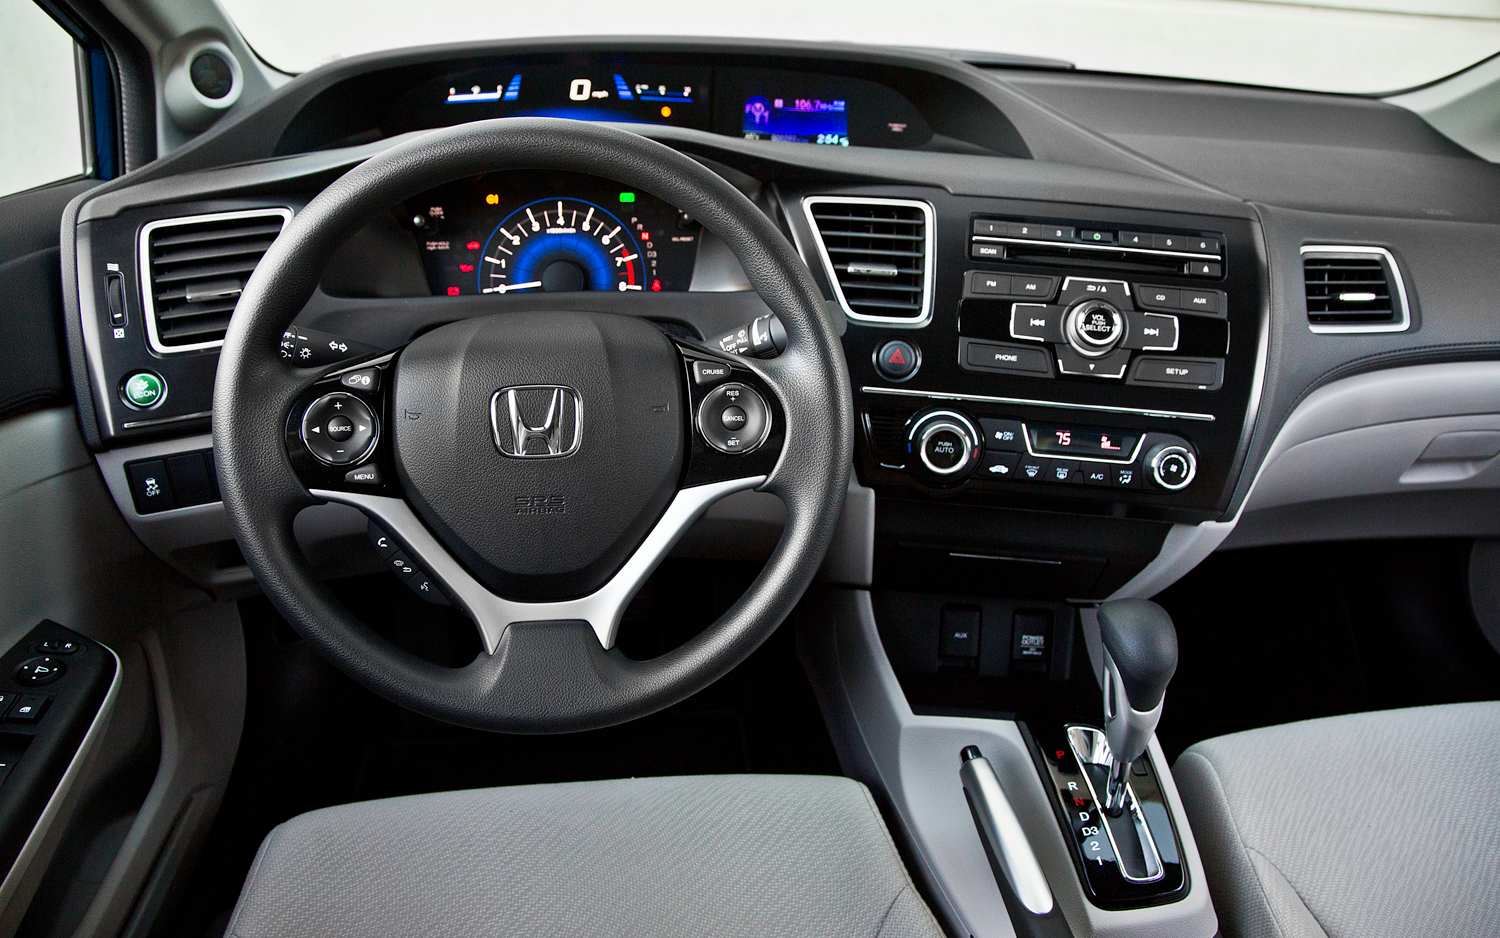 2013 Honda Civic #18 Honda Civic #18